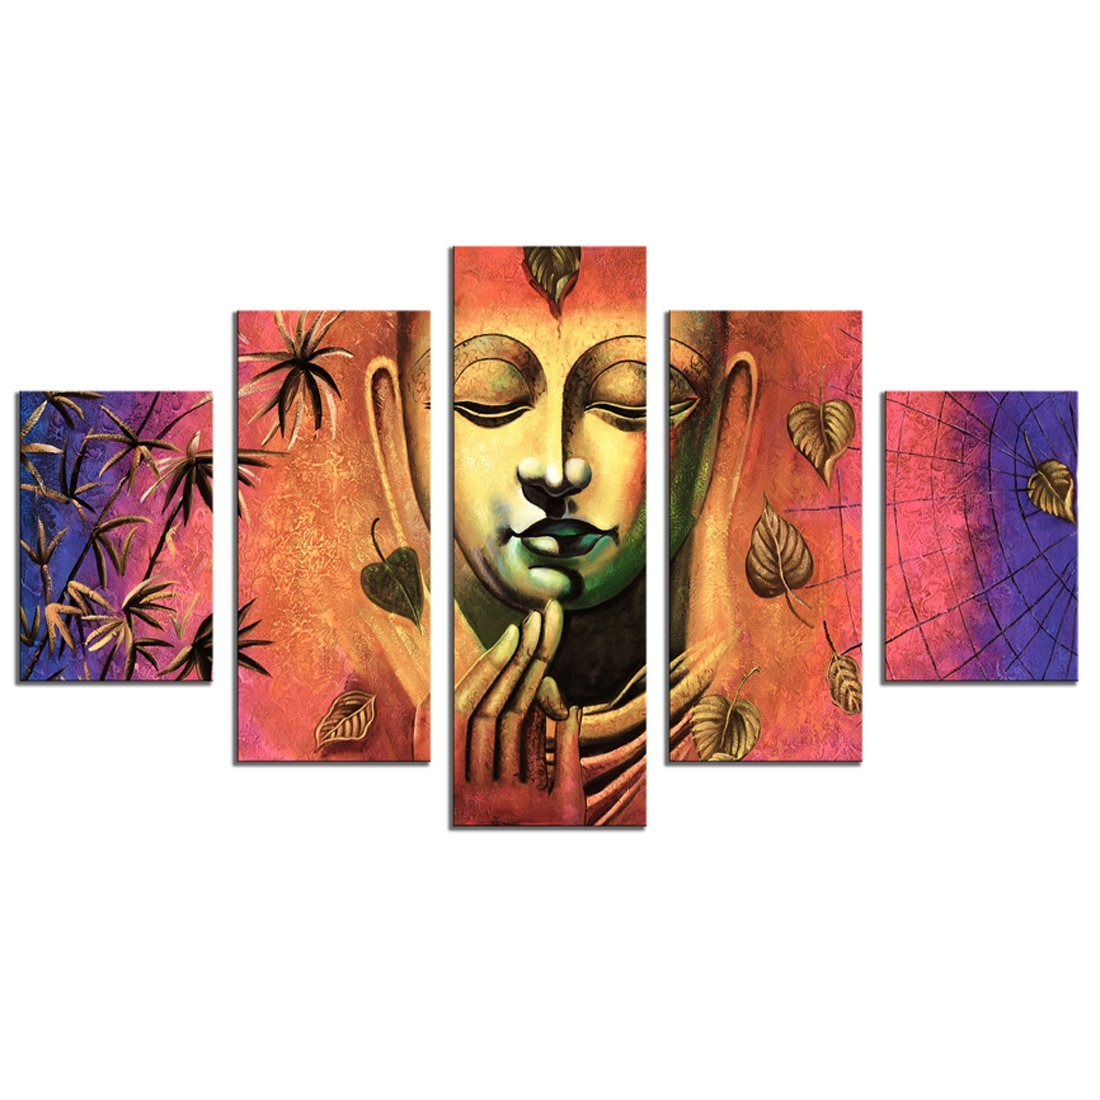 Amosi Art 5 Panel Wall Art Painting Abstract Buddha Picture Prints On  Canvas Buddha Canvas Wall Art The Picture For Modern Home Living Room  Decoration For Abstract Bar And Panel Wall Decor (Image 10 of 30)